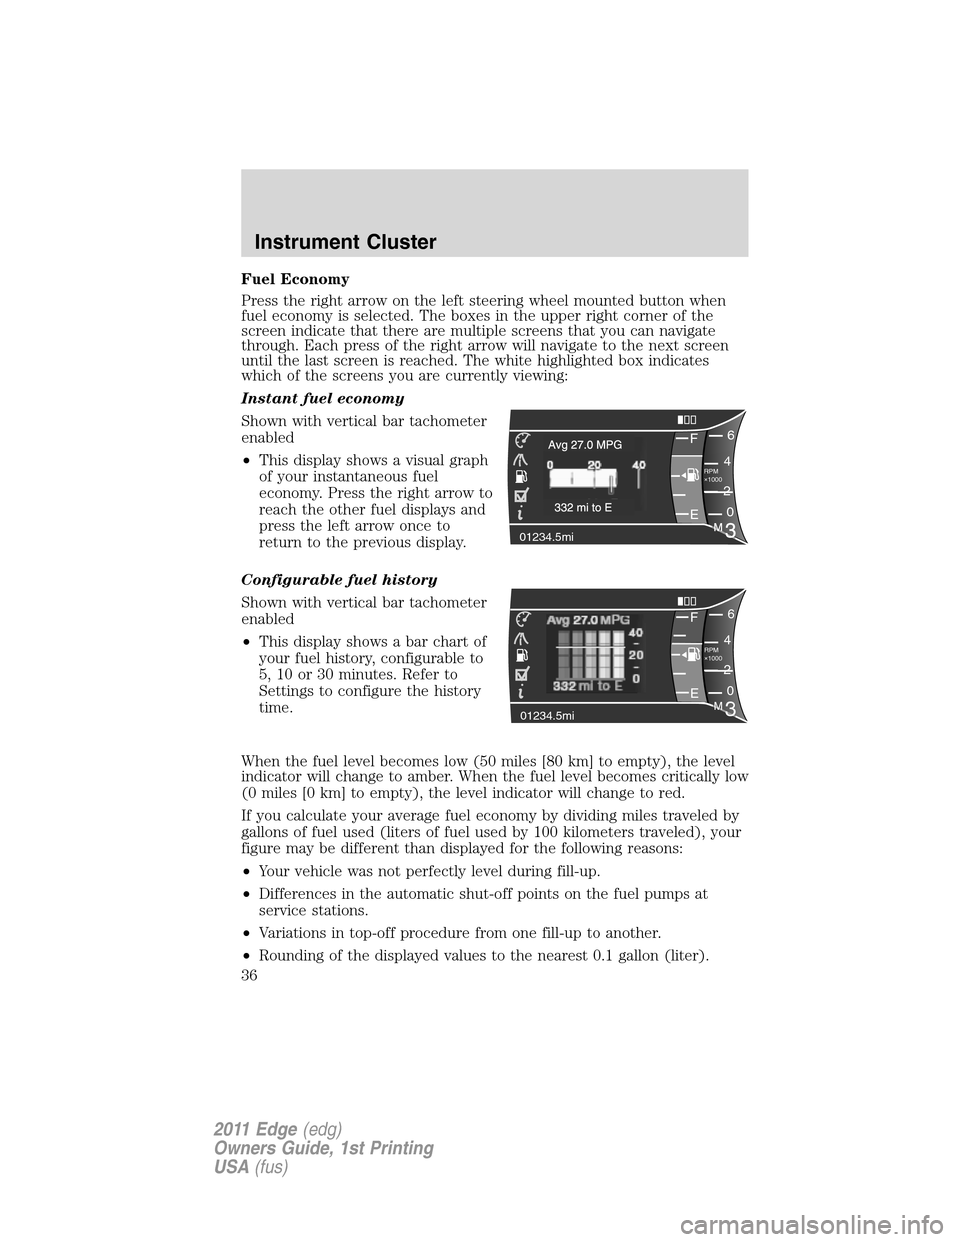 FORD EDGE 2011 1.G Owners Manual, Page 36